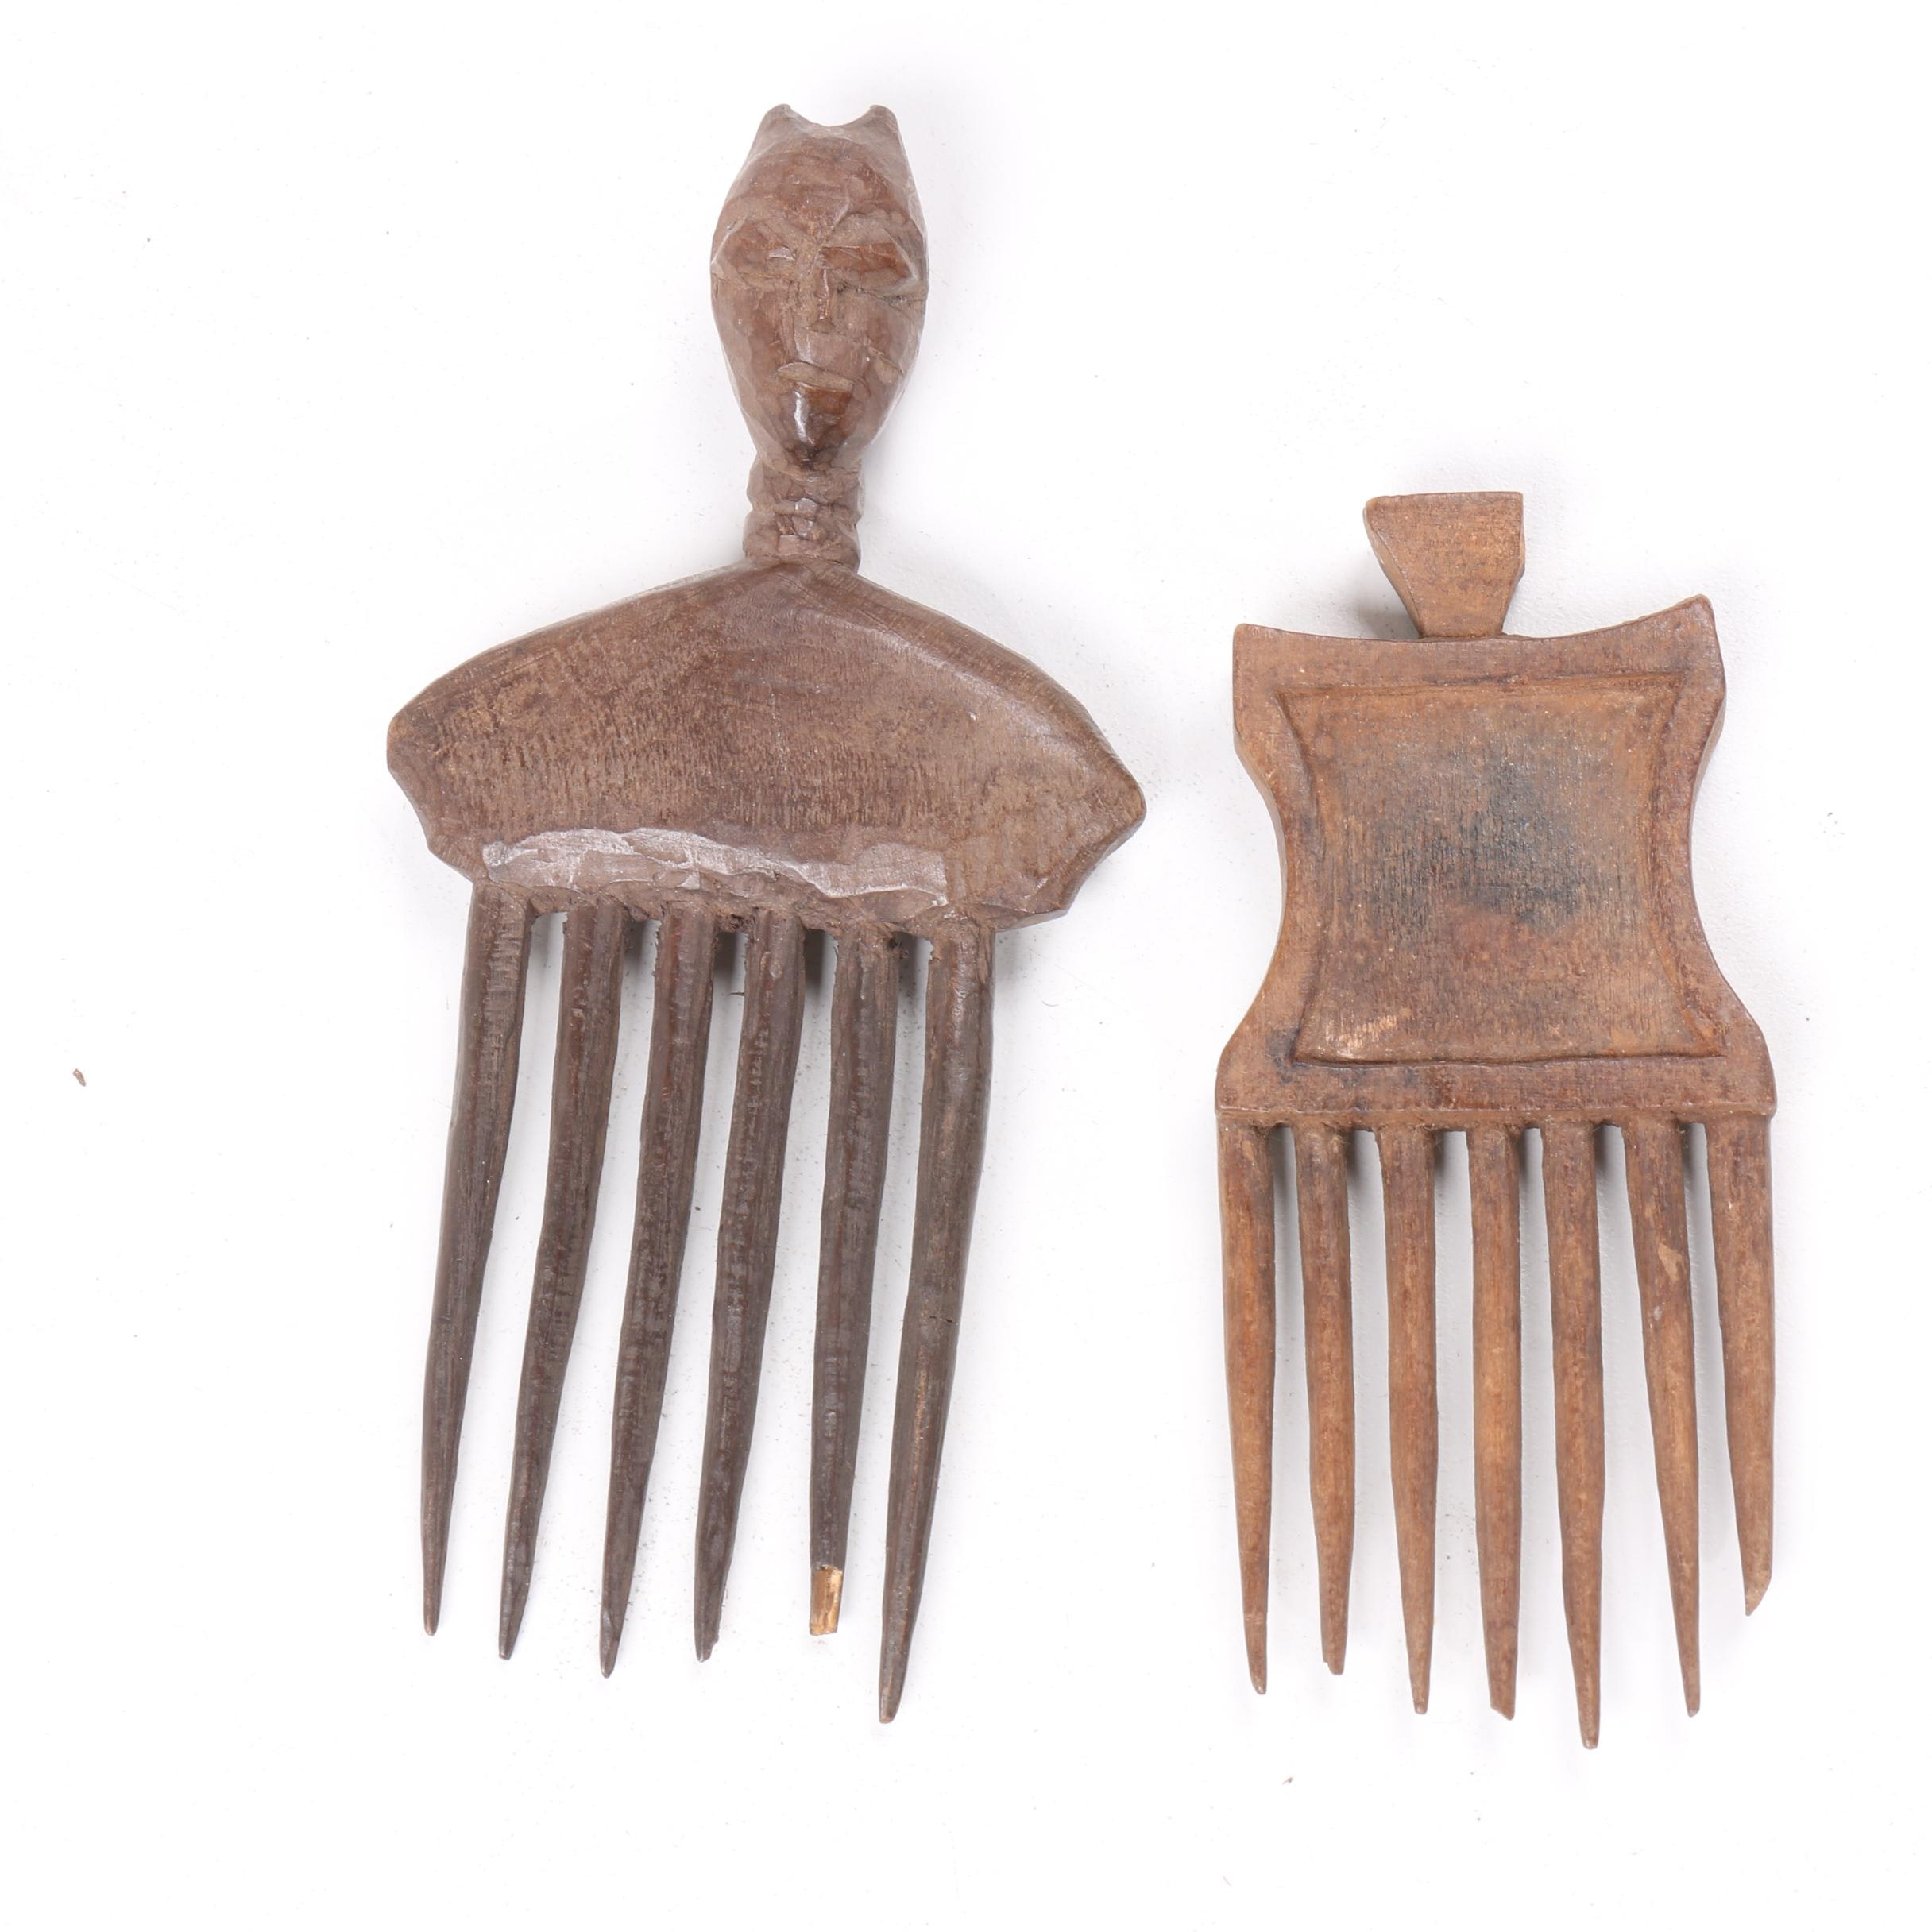 20th Century Ornamental Combs from Côte d'Ivoire